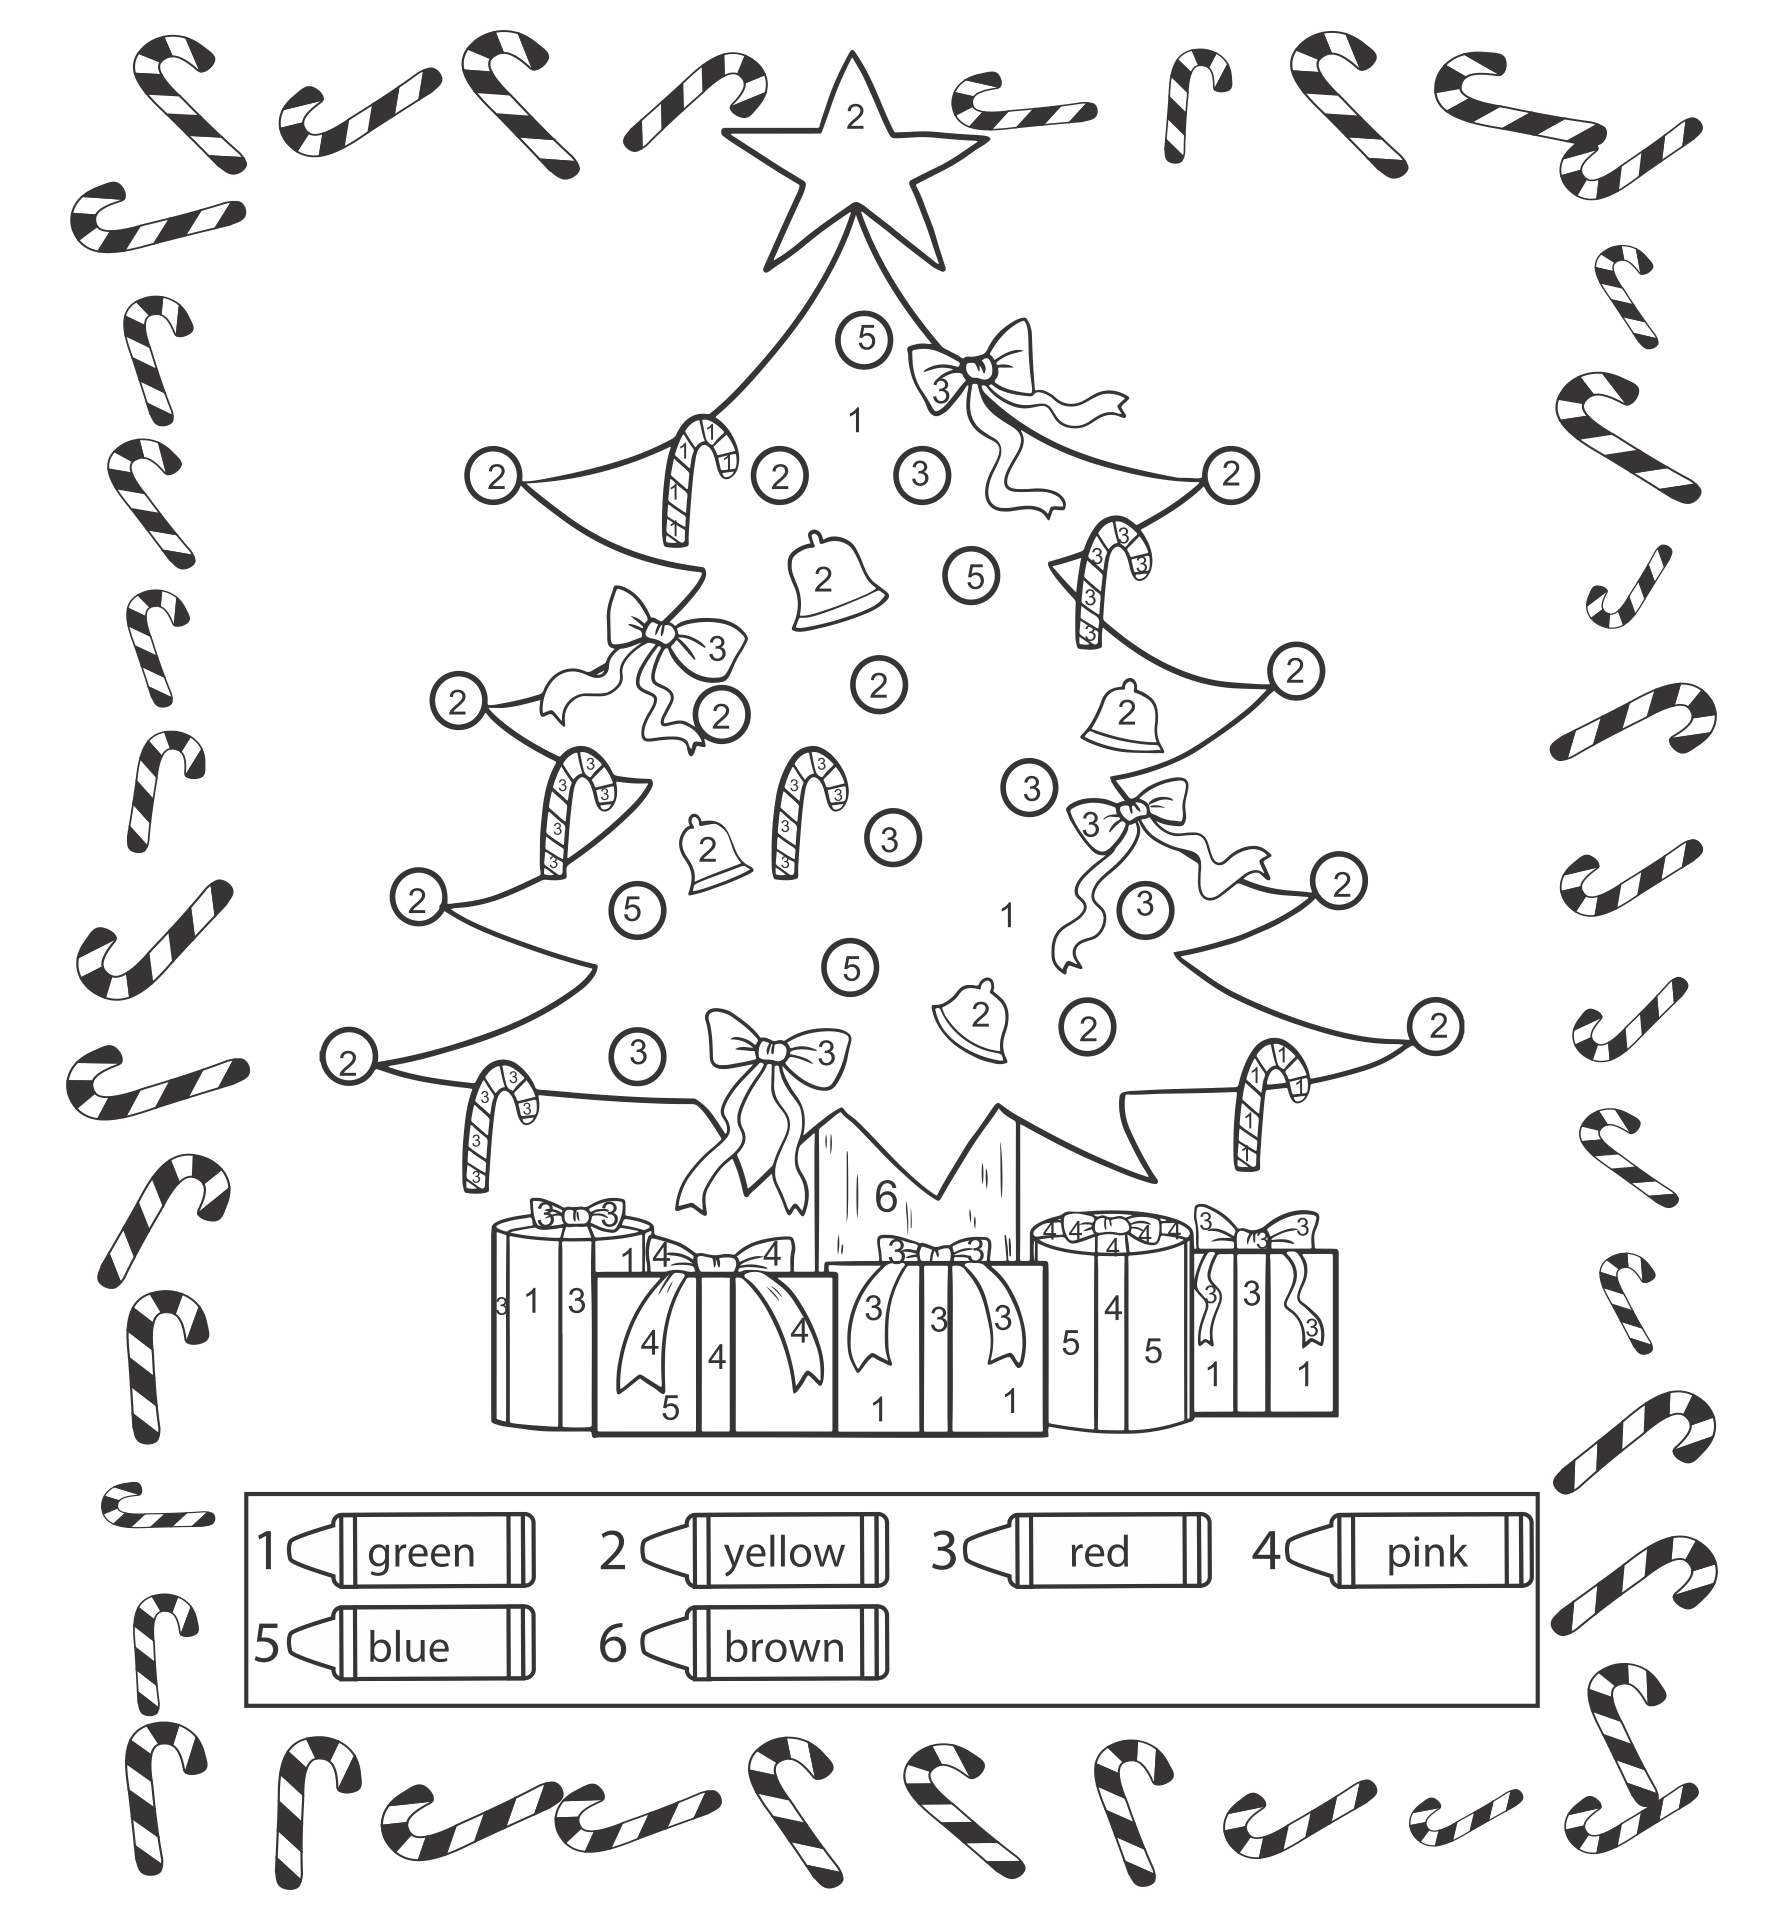 6 Best Images Of Christmas Printables And Preschool Worksheets - Free  Printable Christmas Worksheets Preschool, Preschool Christmas Activities  And Free Preschool Christmas Activities Printables / Printablee.com